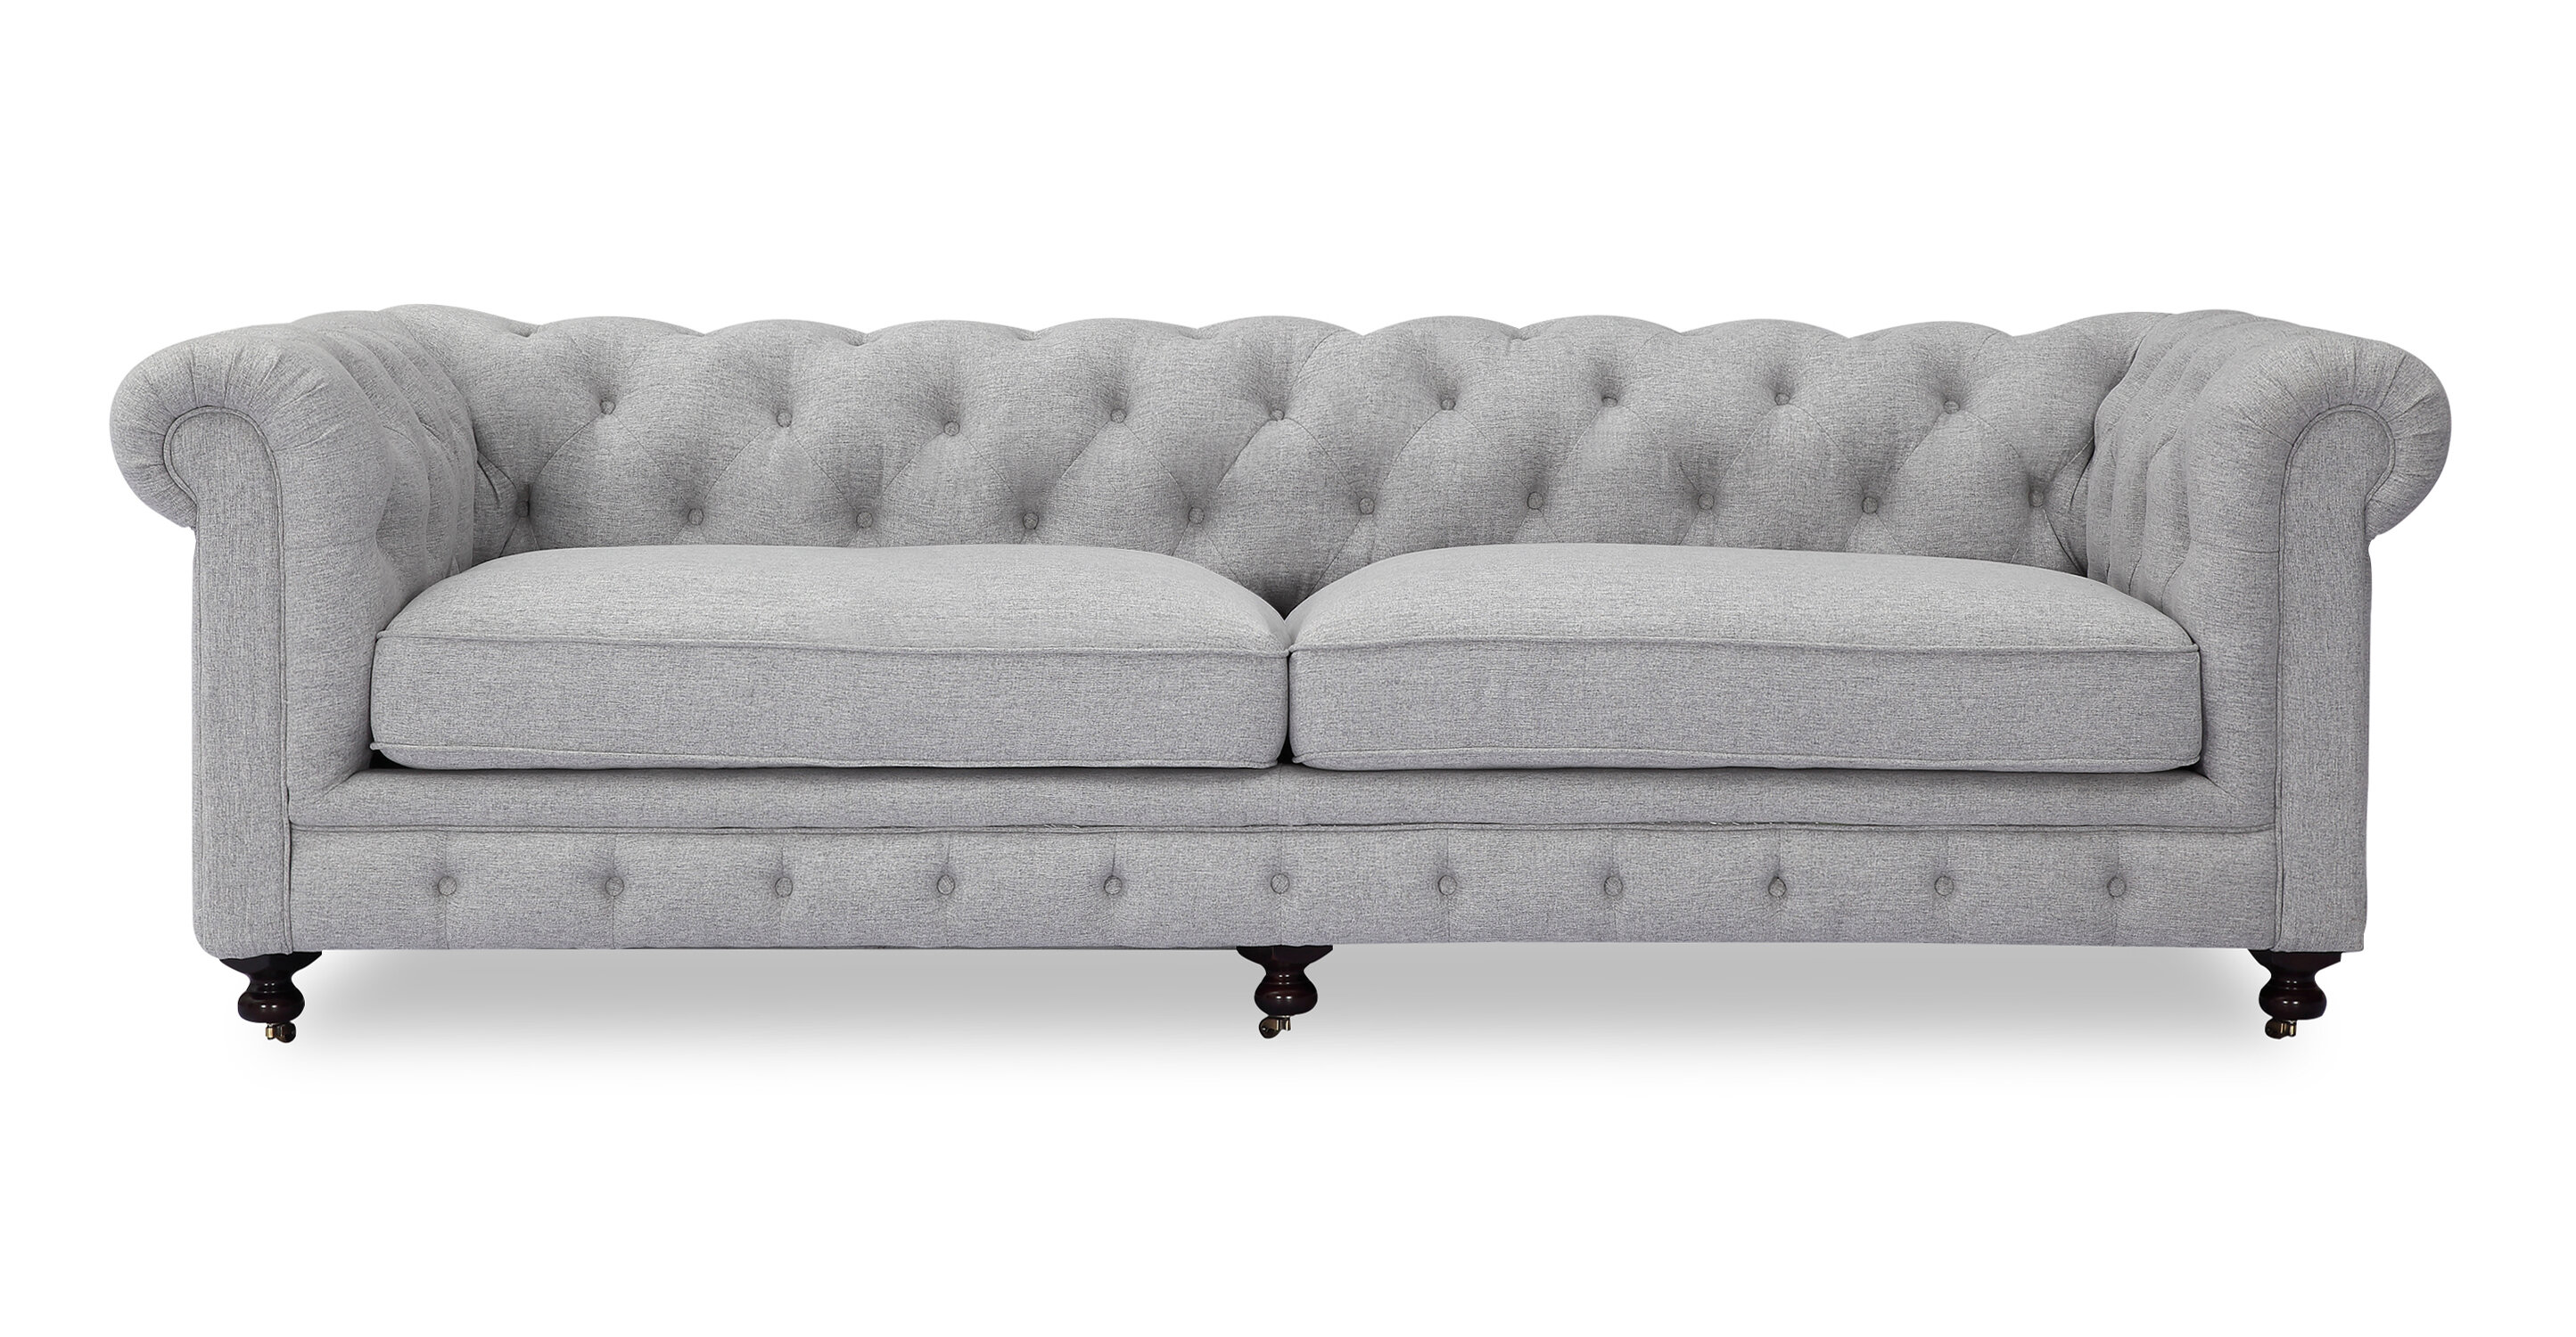 Cozy Life Modern Chesterfield Sofa